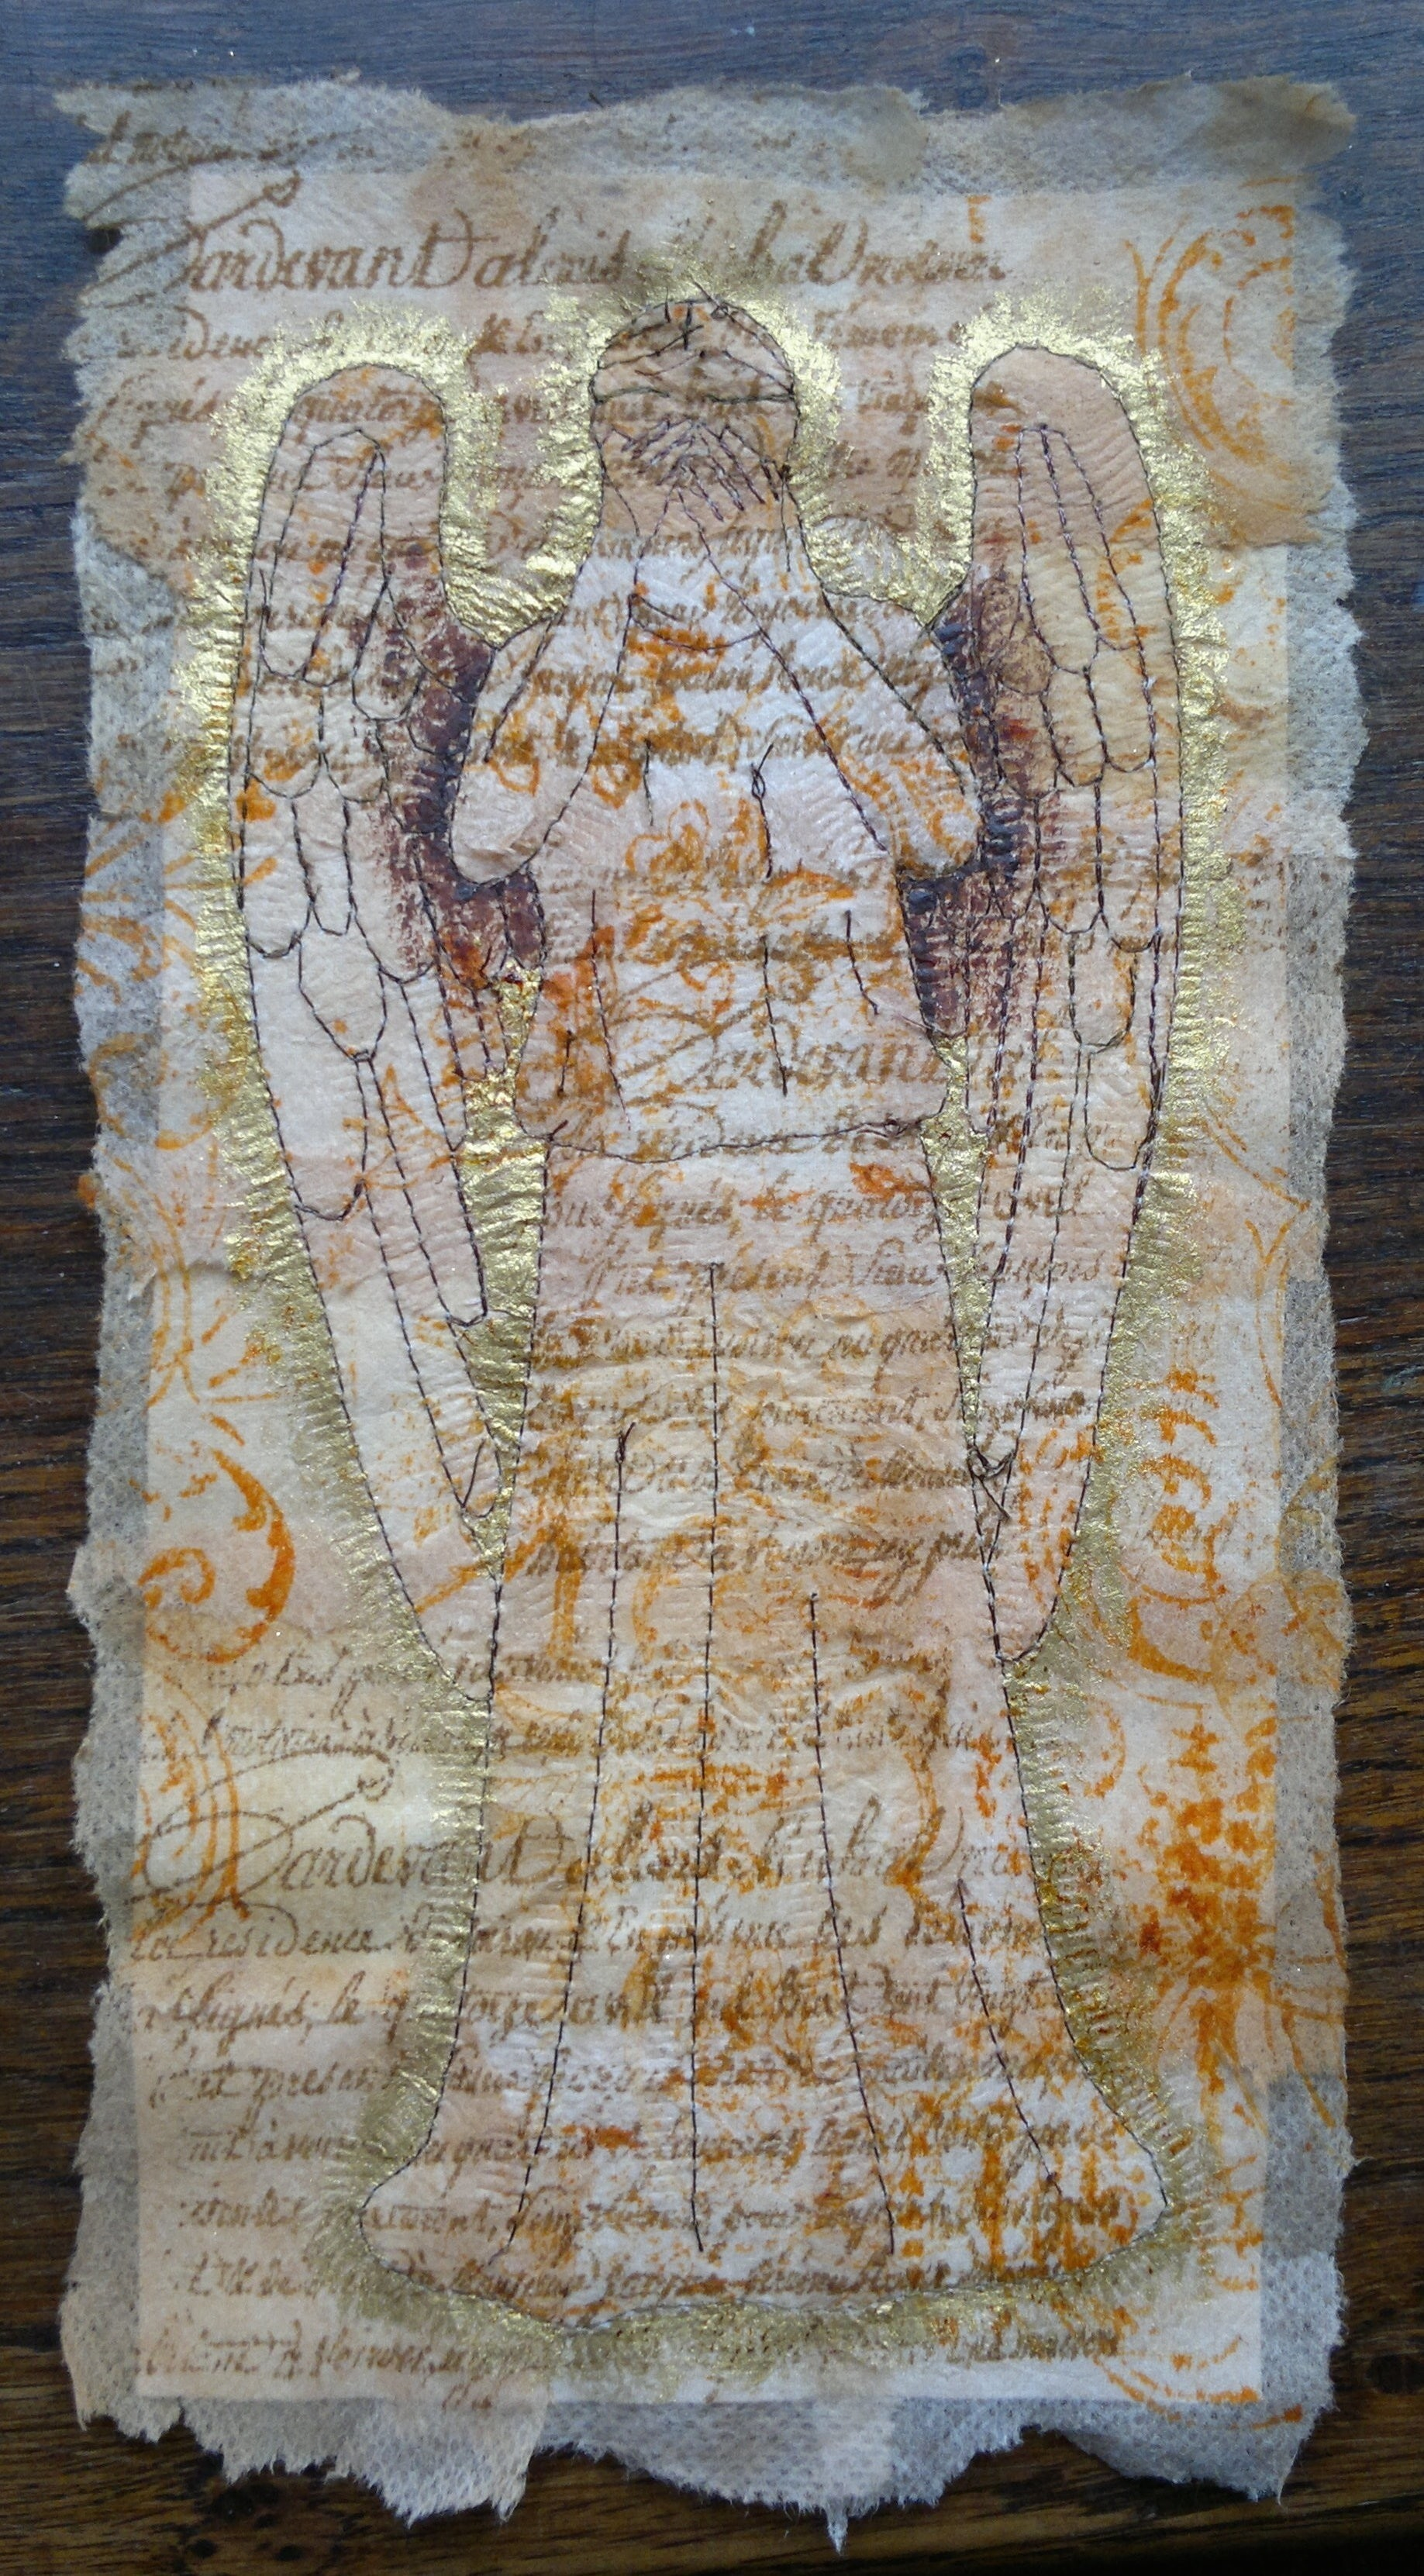 weeping angel from dr who  u00b7 how to embroider art  u00b7 needlework on cut out   keep